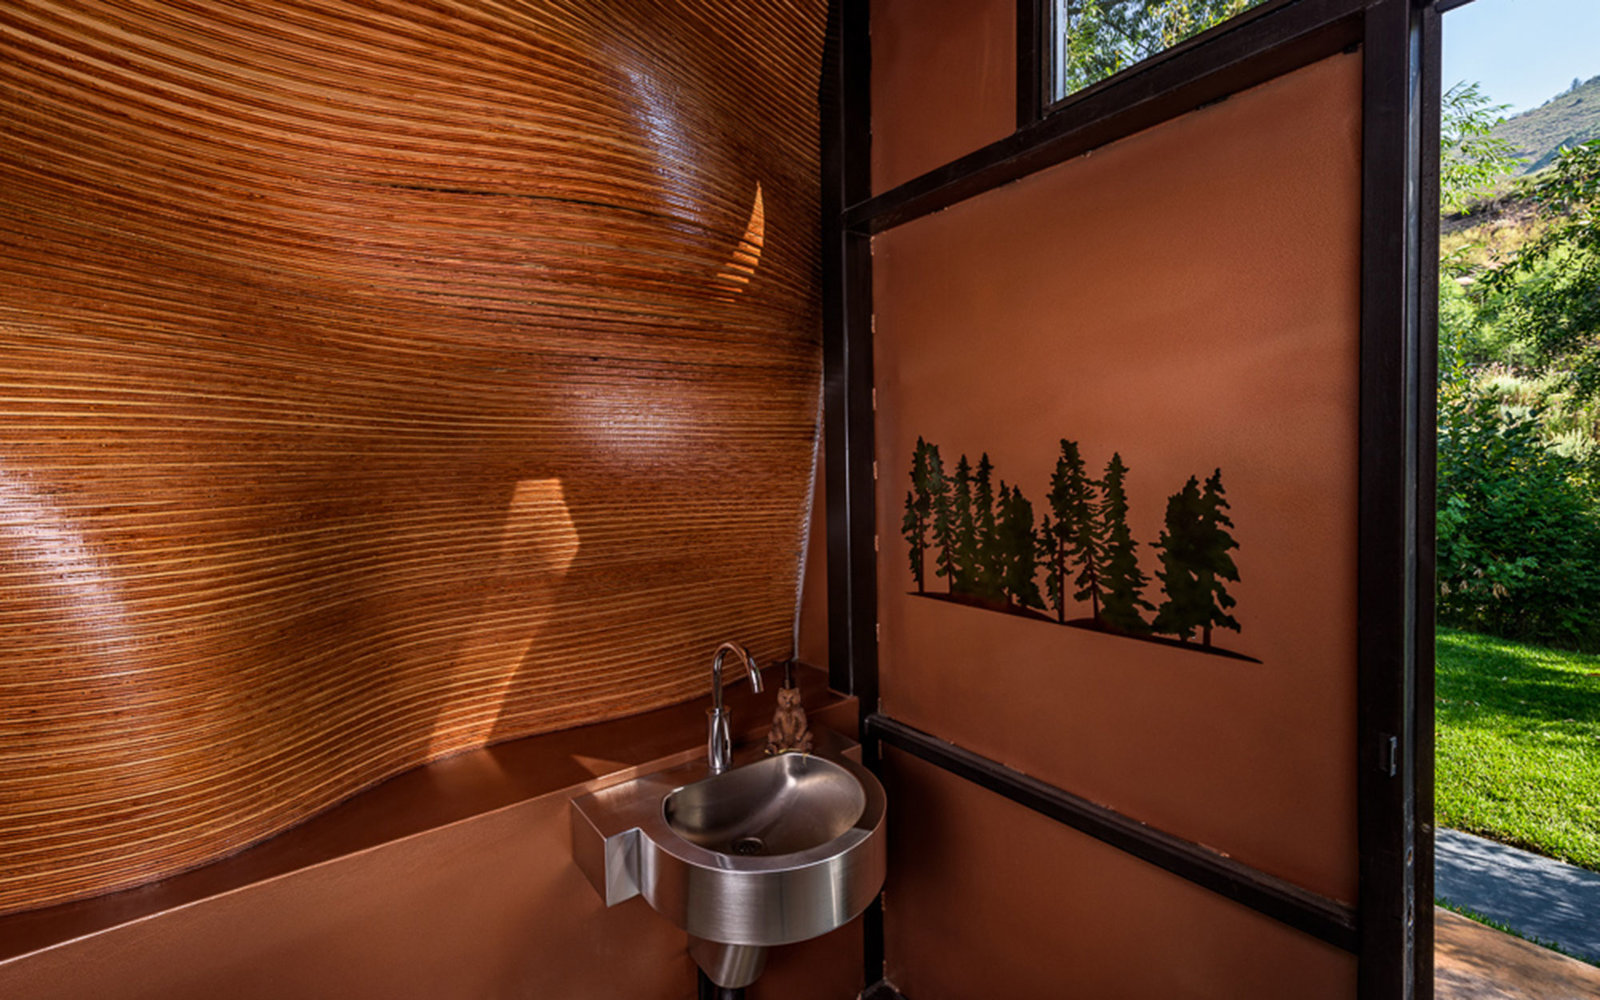 First Place: Town of Minturn Public Restrooms, Minturn, Colorado